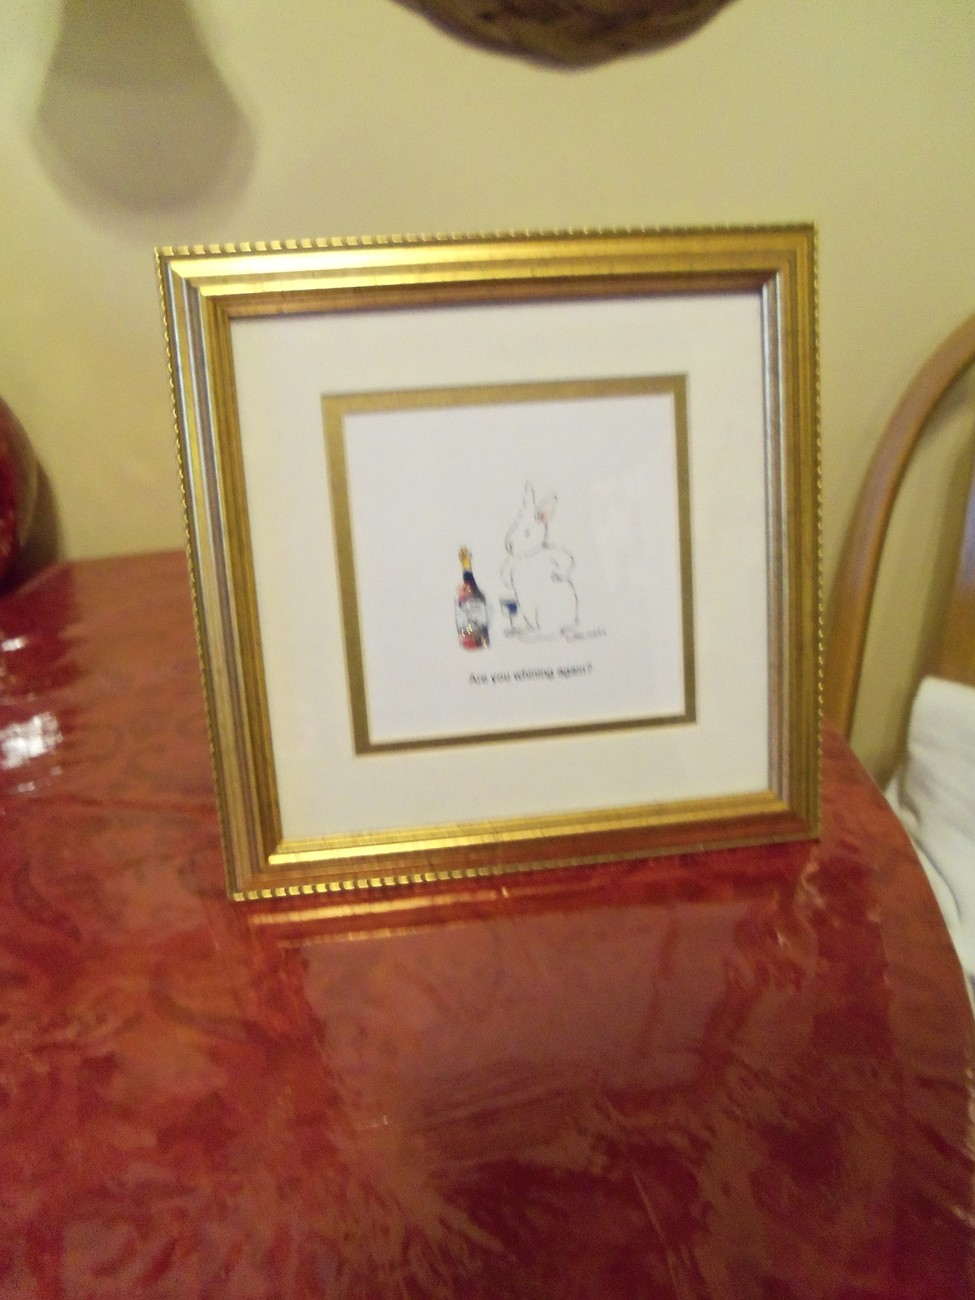 Framed and Matted Novelty Picture